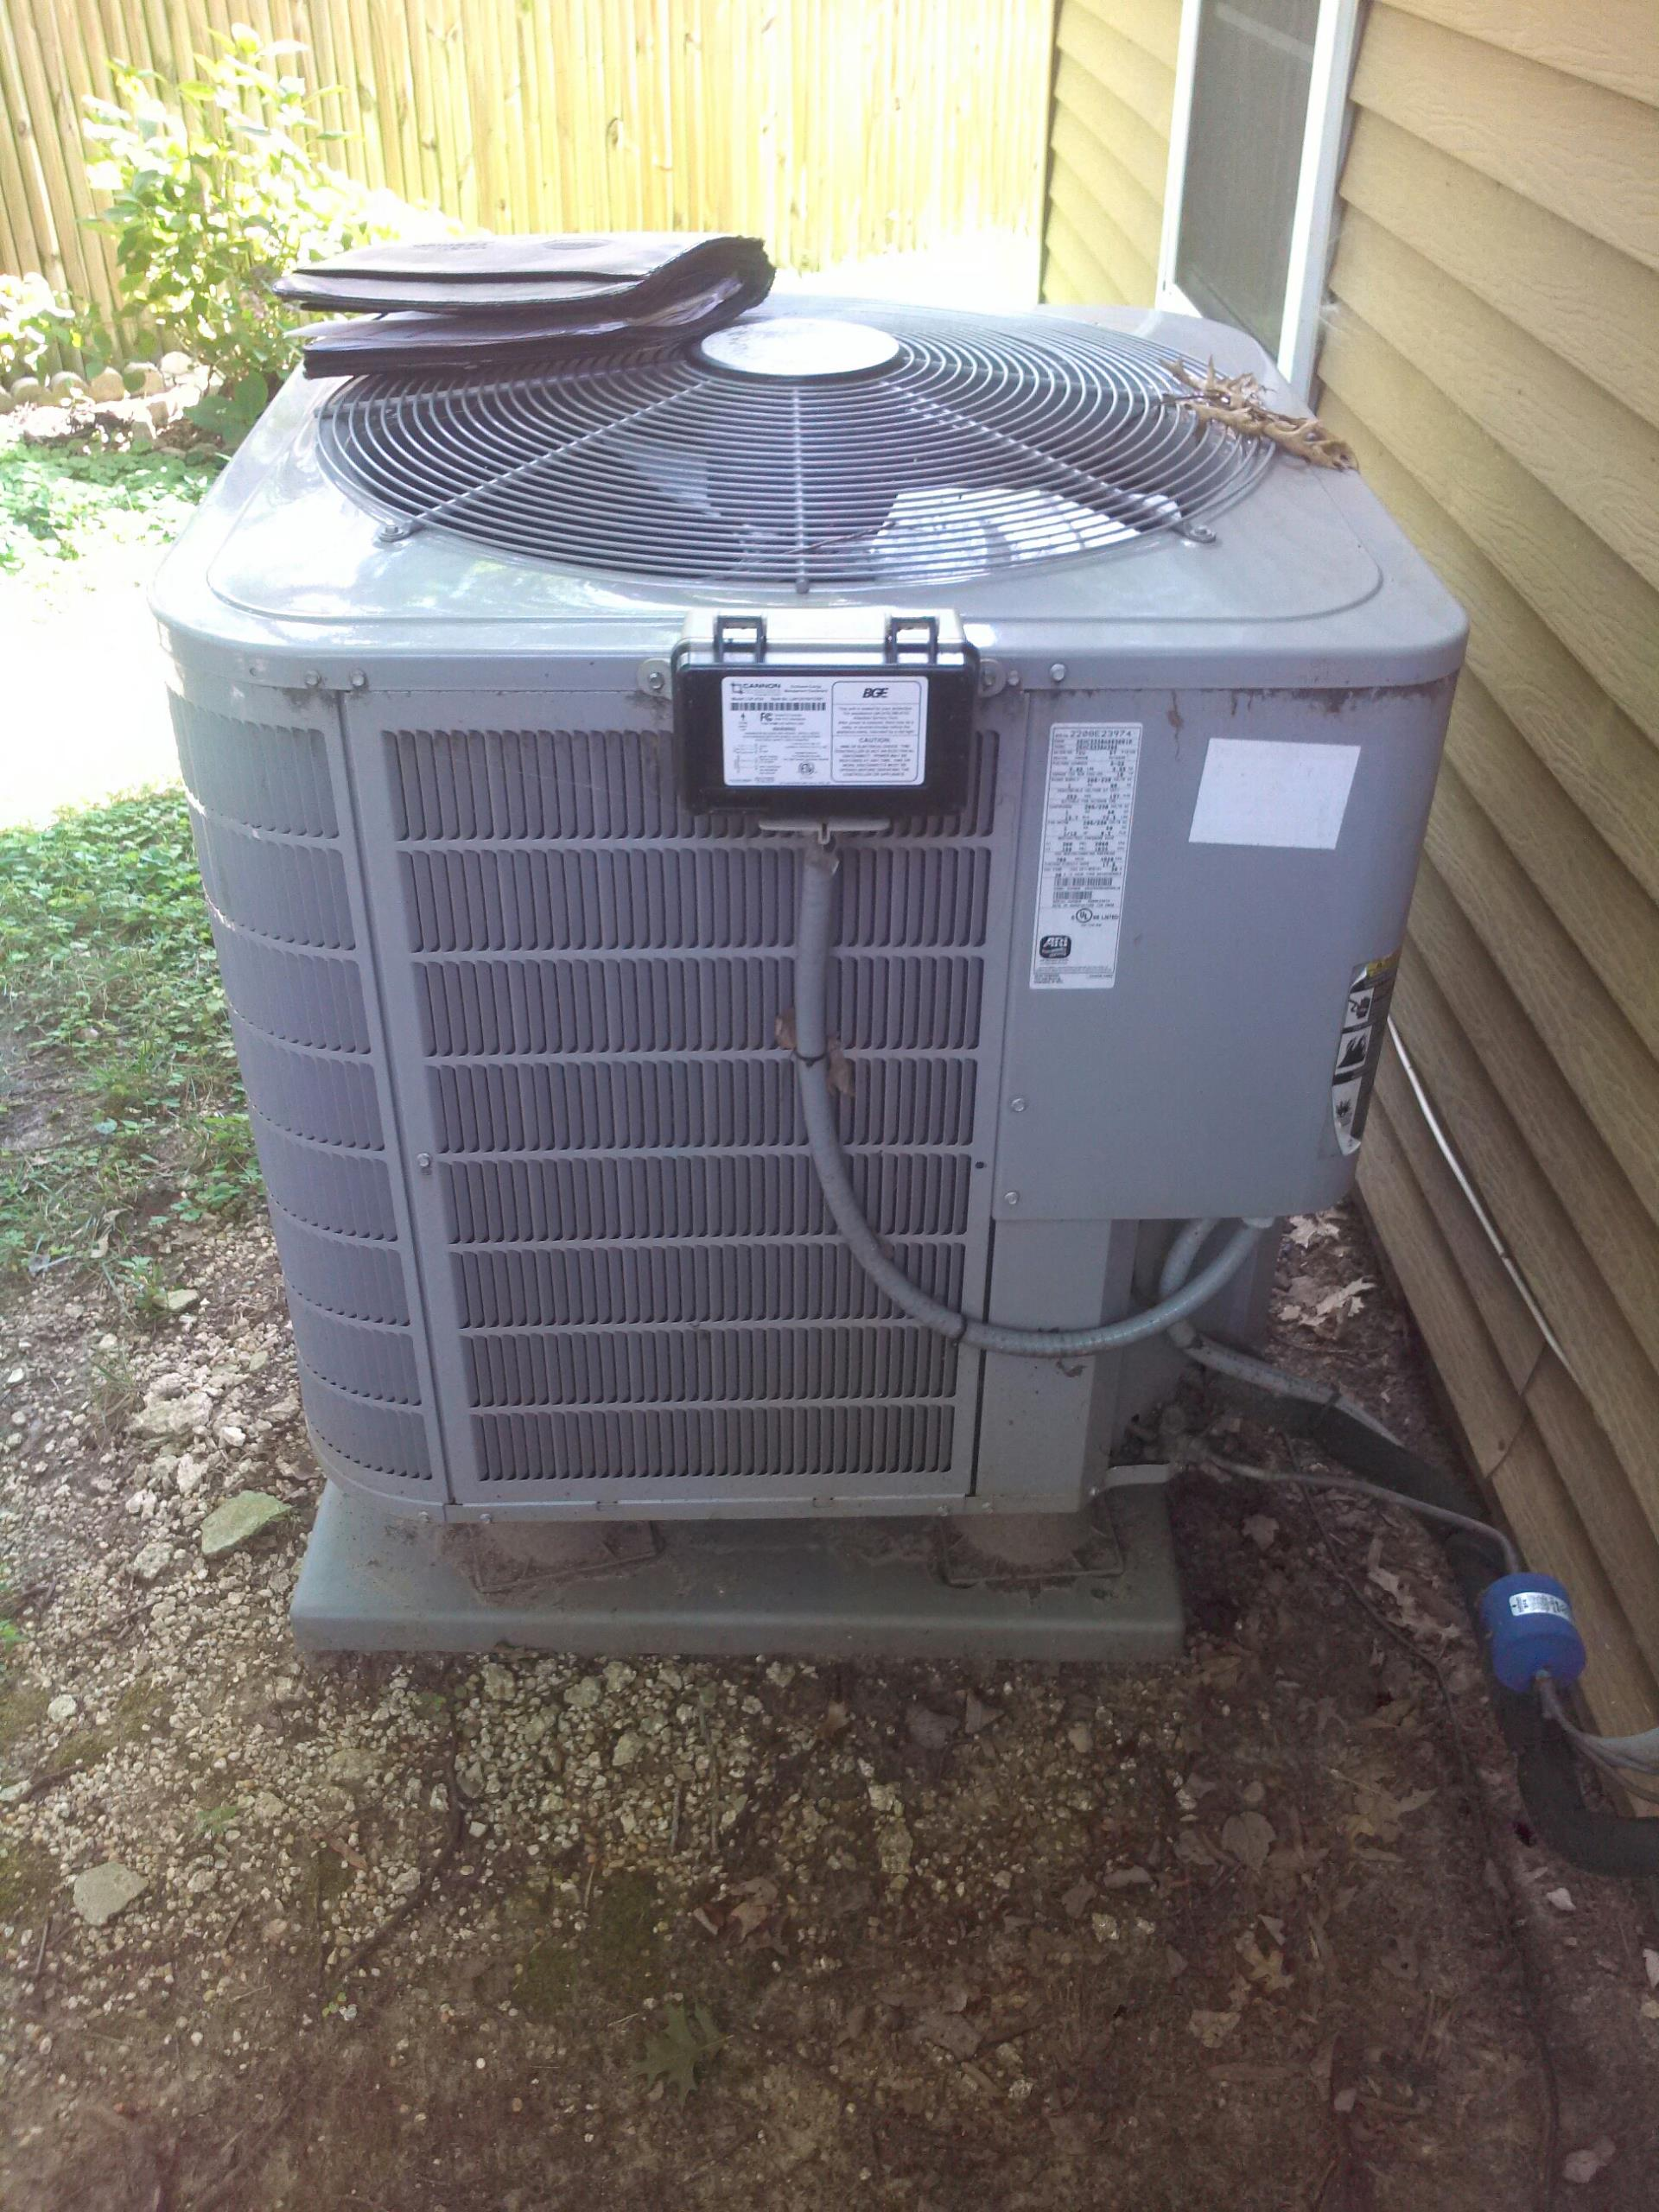 Crofton, MD - Kenmore heat pump heating & air conditioning system replacement installation repair service call crofton maryland 21114